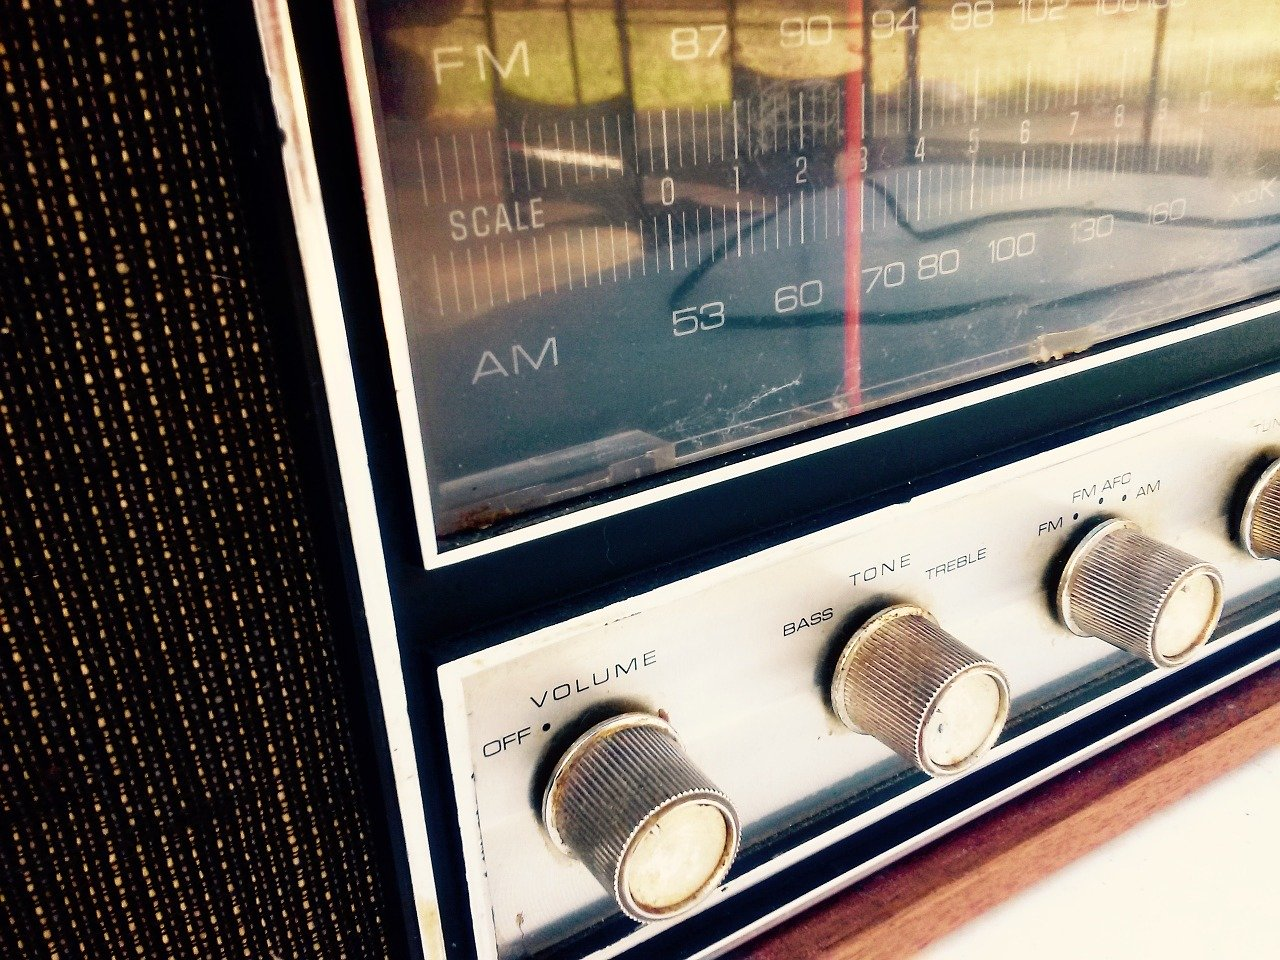 Radio208 on 1440 kHz AM Broadcasts 24 Hours 3